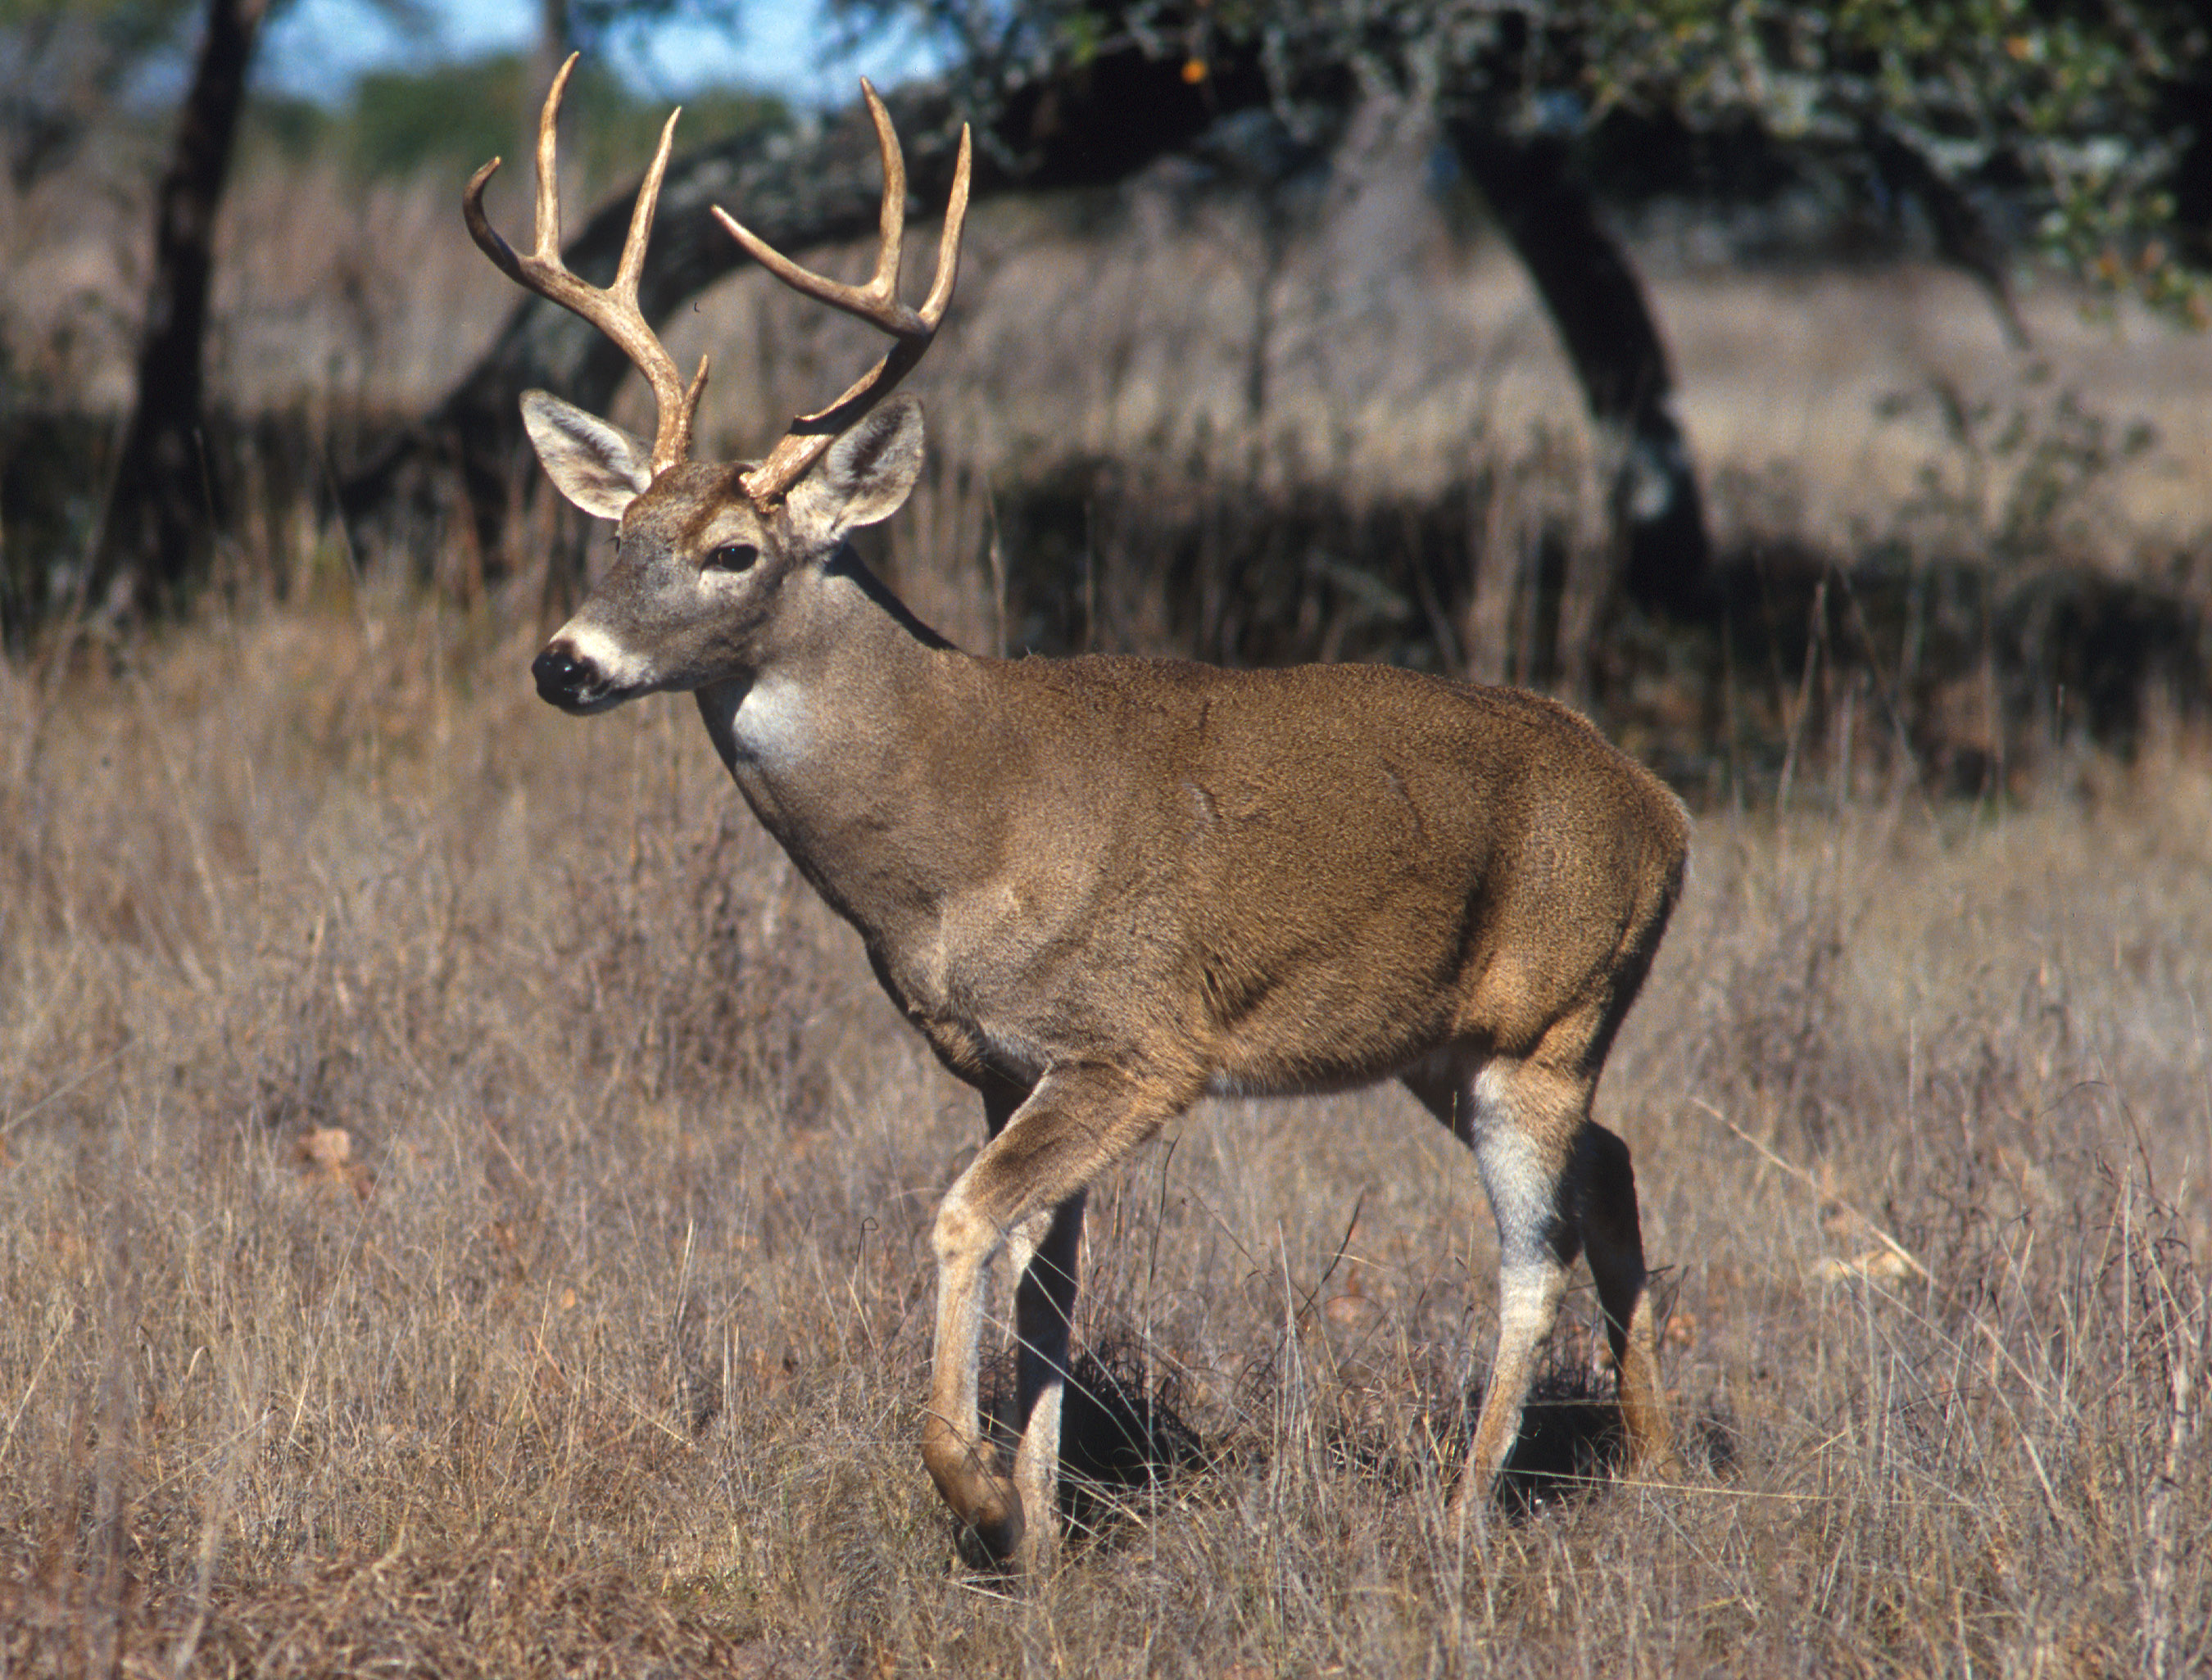 Deer, Turkey killed in Alabama this season must be reported